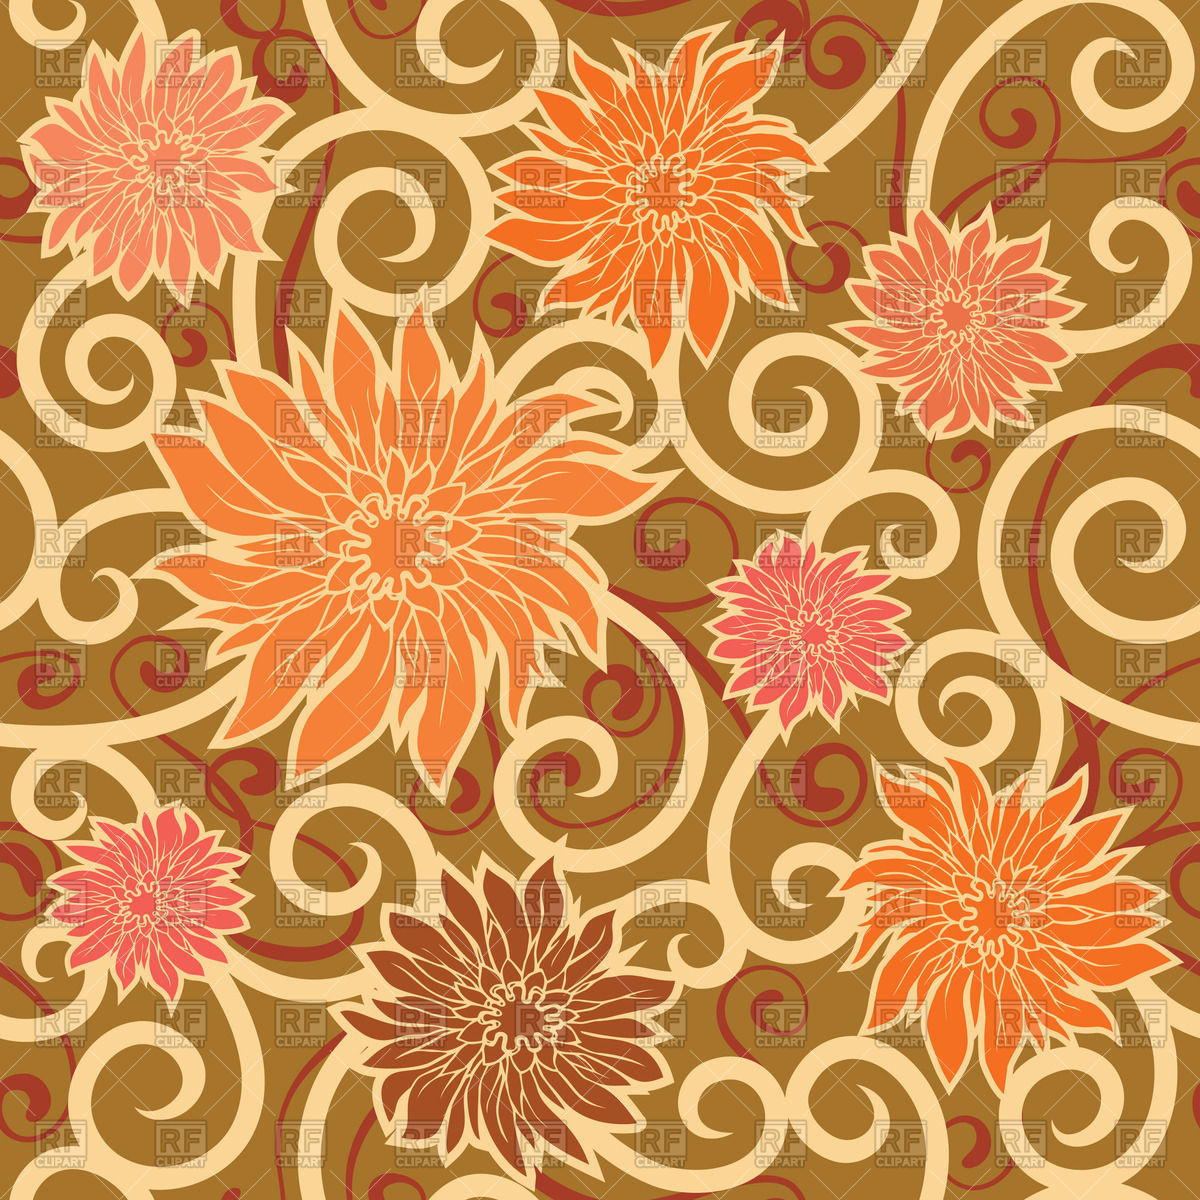 Seamless floral background with orange flowers Vector Image #64383.